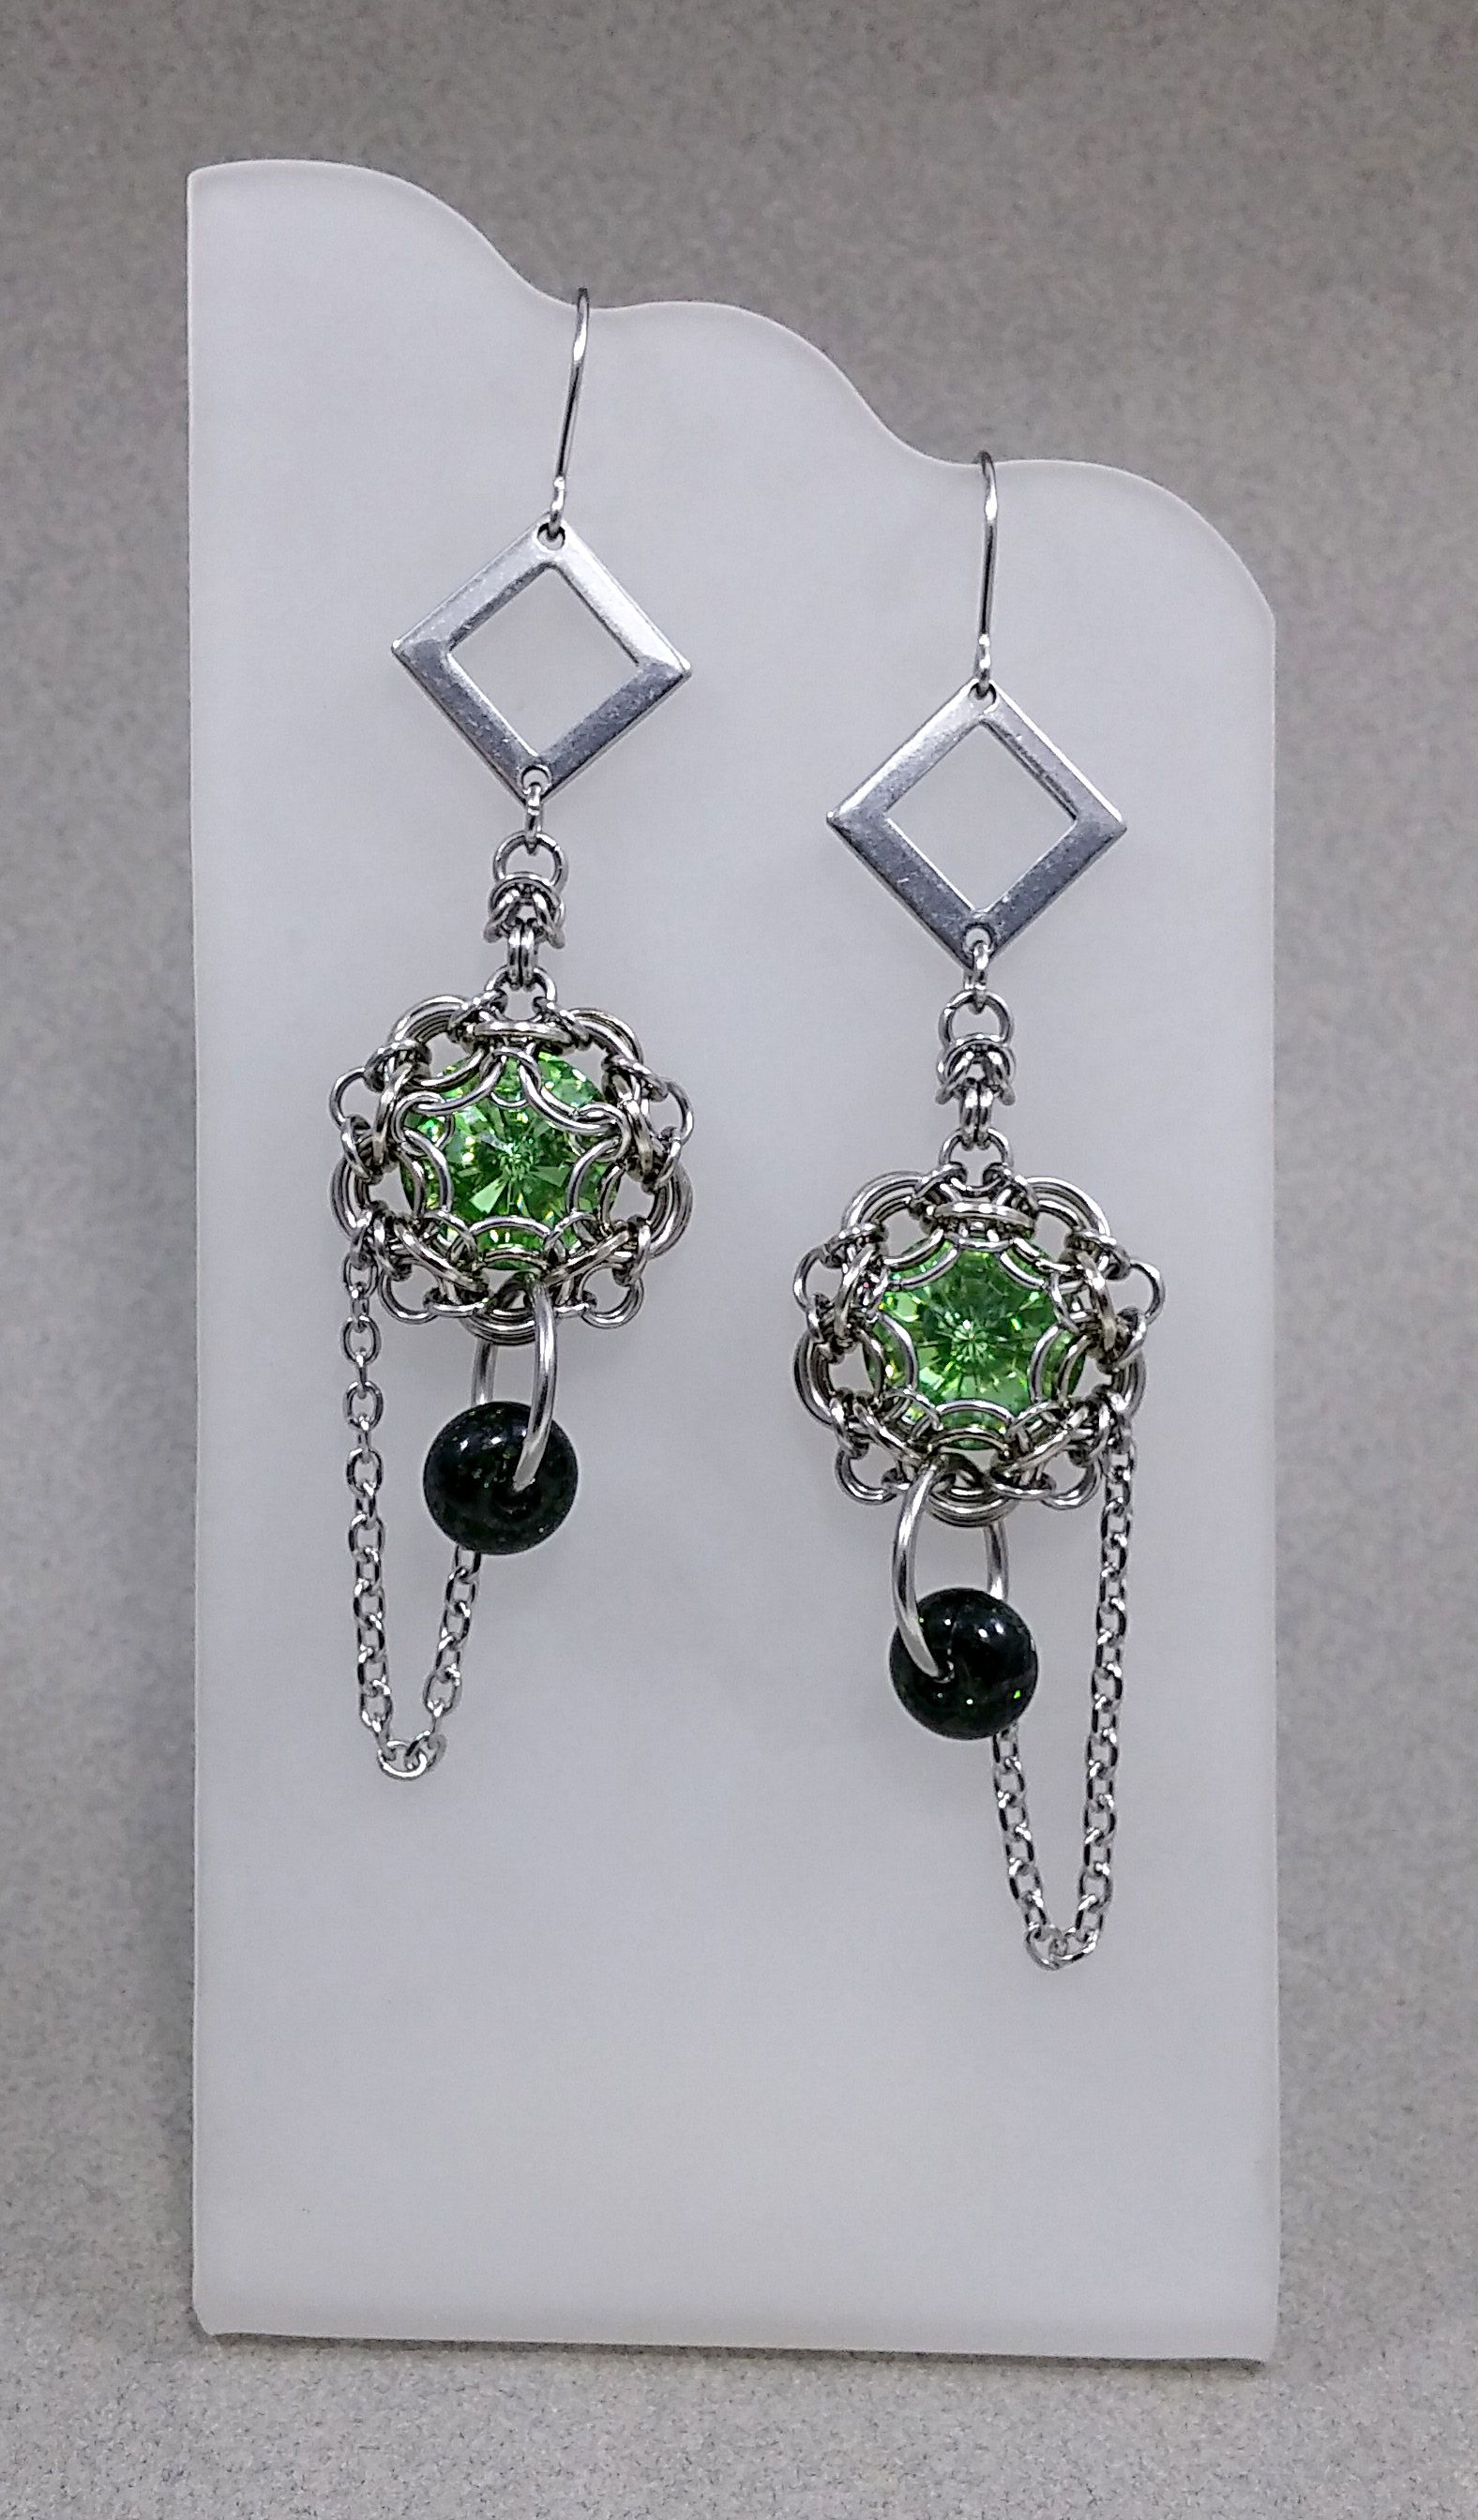 festije chainmaille artisanjewelry hypoallergenic earrings green swarovski metal chainmail stainless